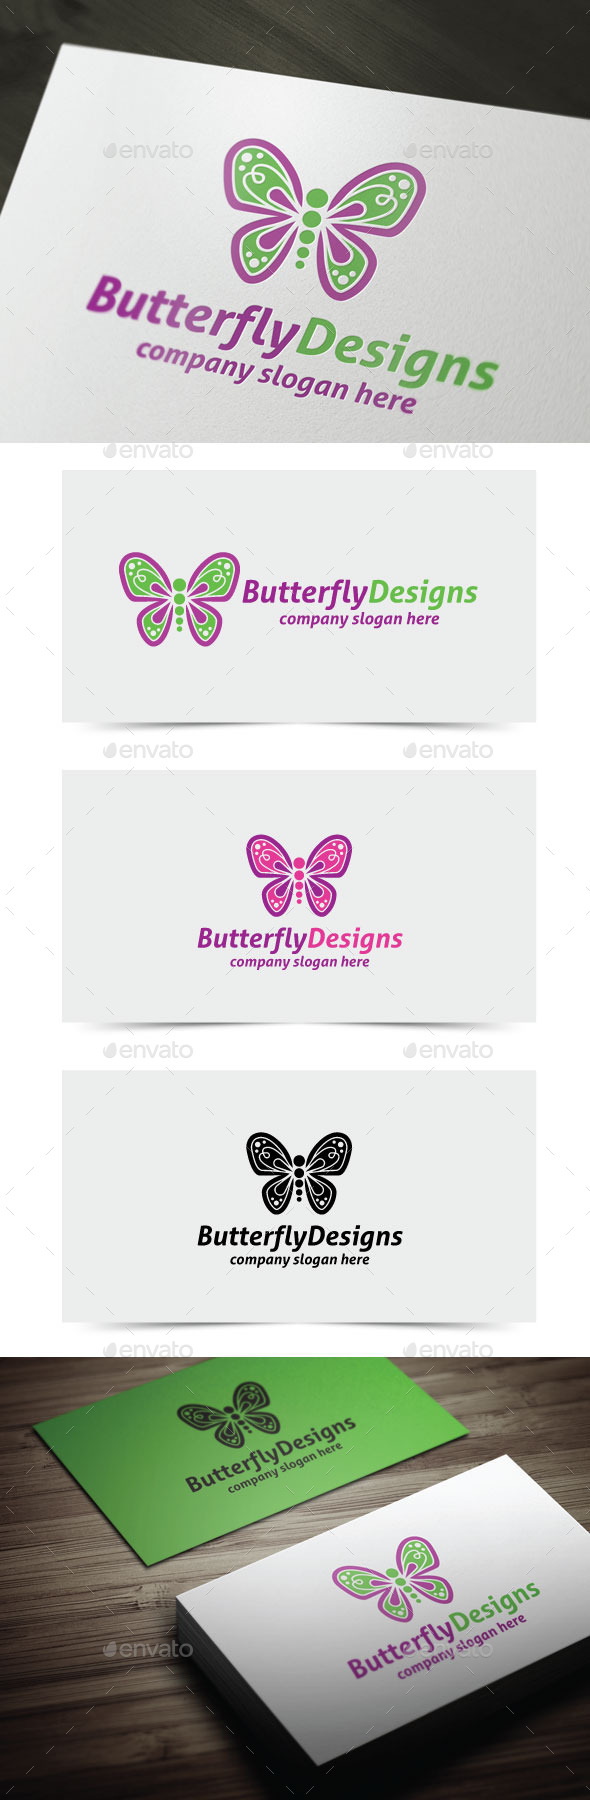 GraphicRiver Butterfly Designs 11115203